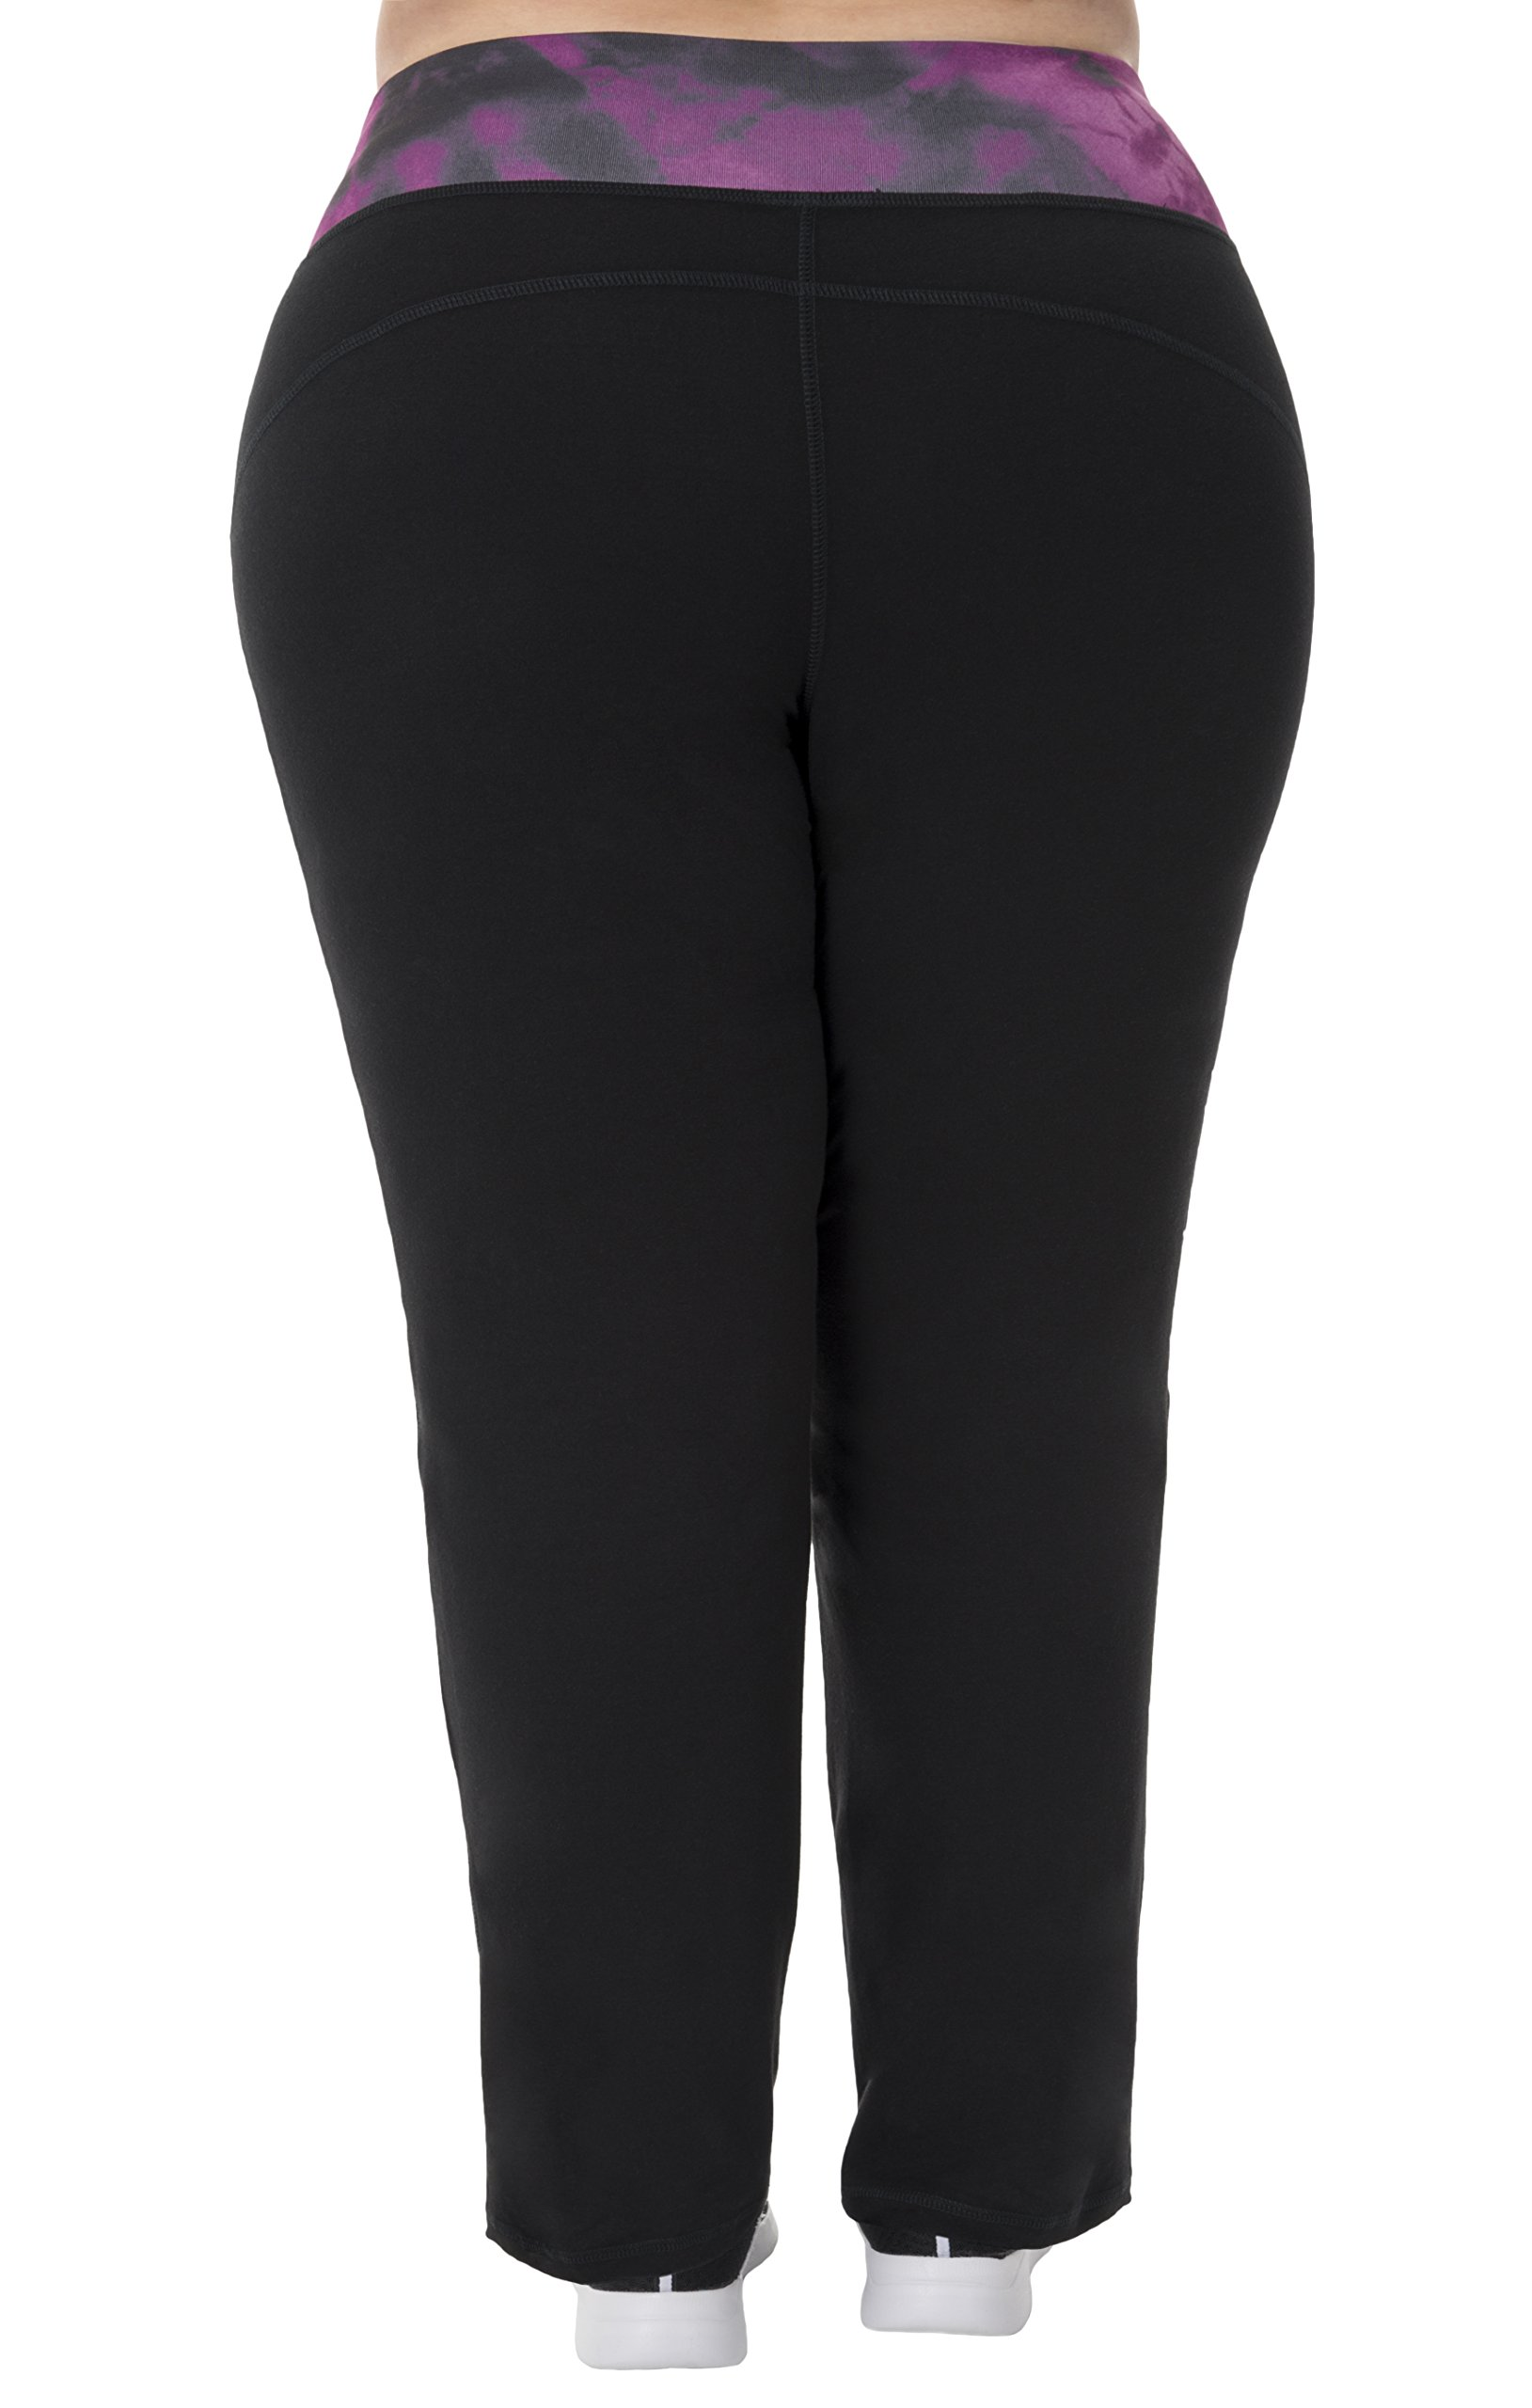 Fit for Me by Fruit of the Loom Women's Plus Size Relaxed Fit Yoga Pant, Black/Deep Plum Cloud, 2X by Fit for Me by Fruit of the Loom (Image #2)